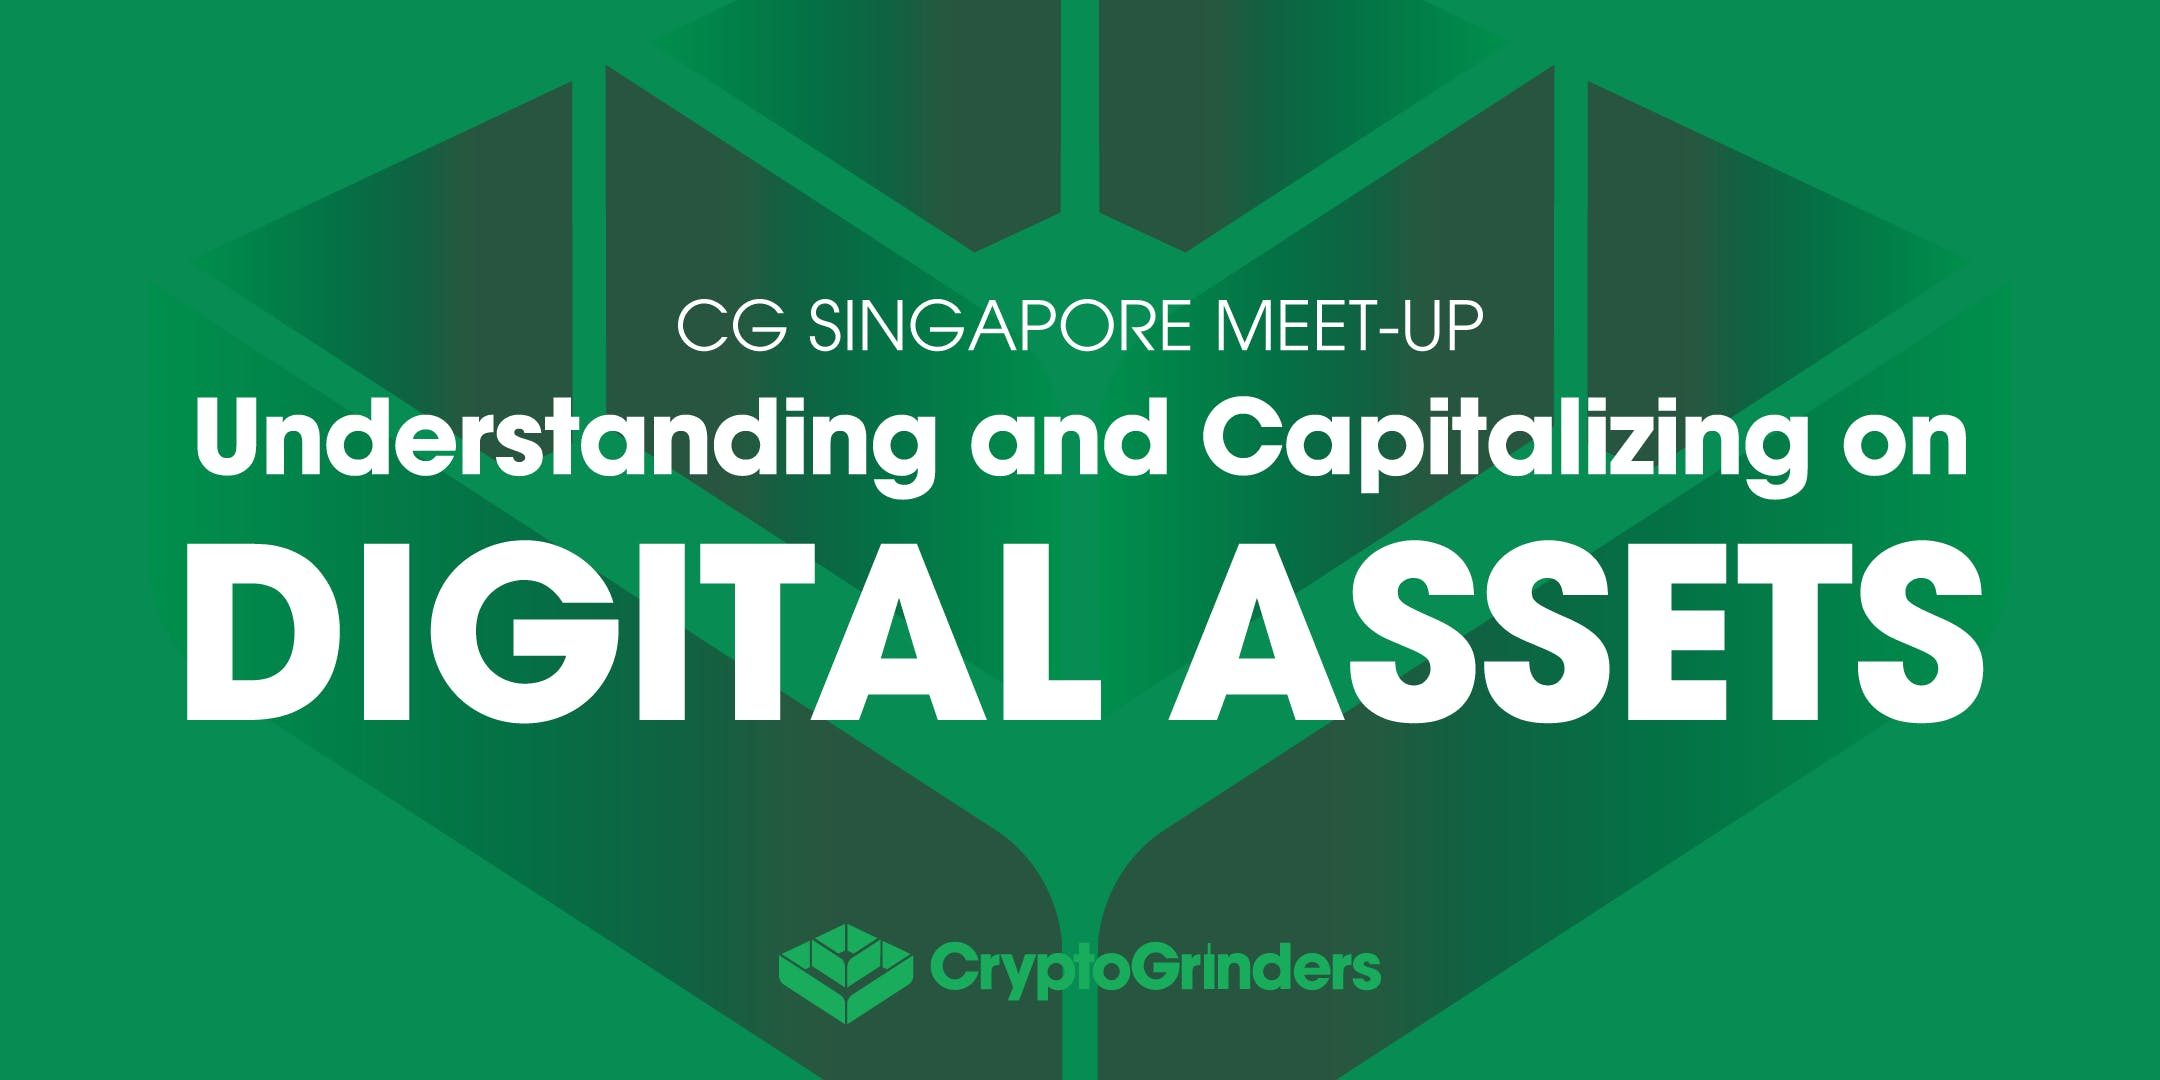 CG Singapore Meet-Up Understanding and Capitalizing on Digital Assets